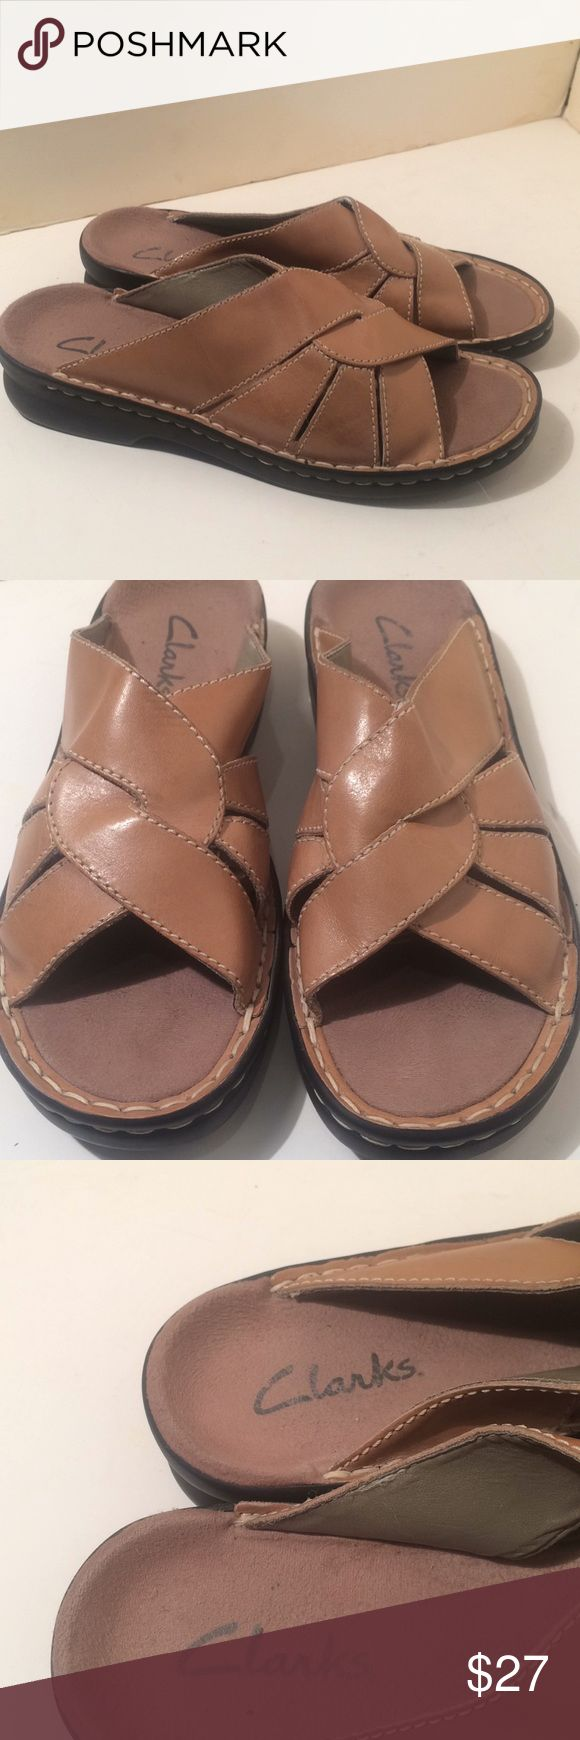 Clarks sandals shoes slip on worn once Clarks  Super cute for summer or your much needed get away!!! Size 8 m slip on tan in color worn once  I am a huge clarks / born shoes fanatic and am Doing a huge clean out most of my shoes have only been worn 1-2 times   Open to reasonable offers!! Clarks Shoes Sandals